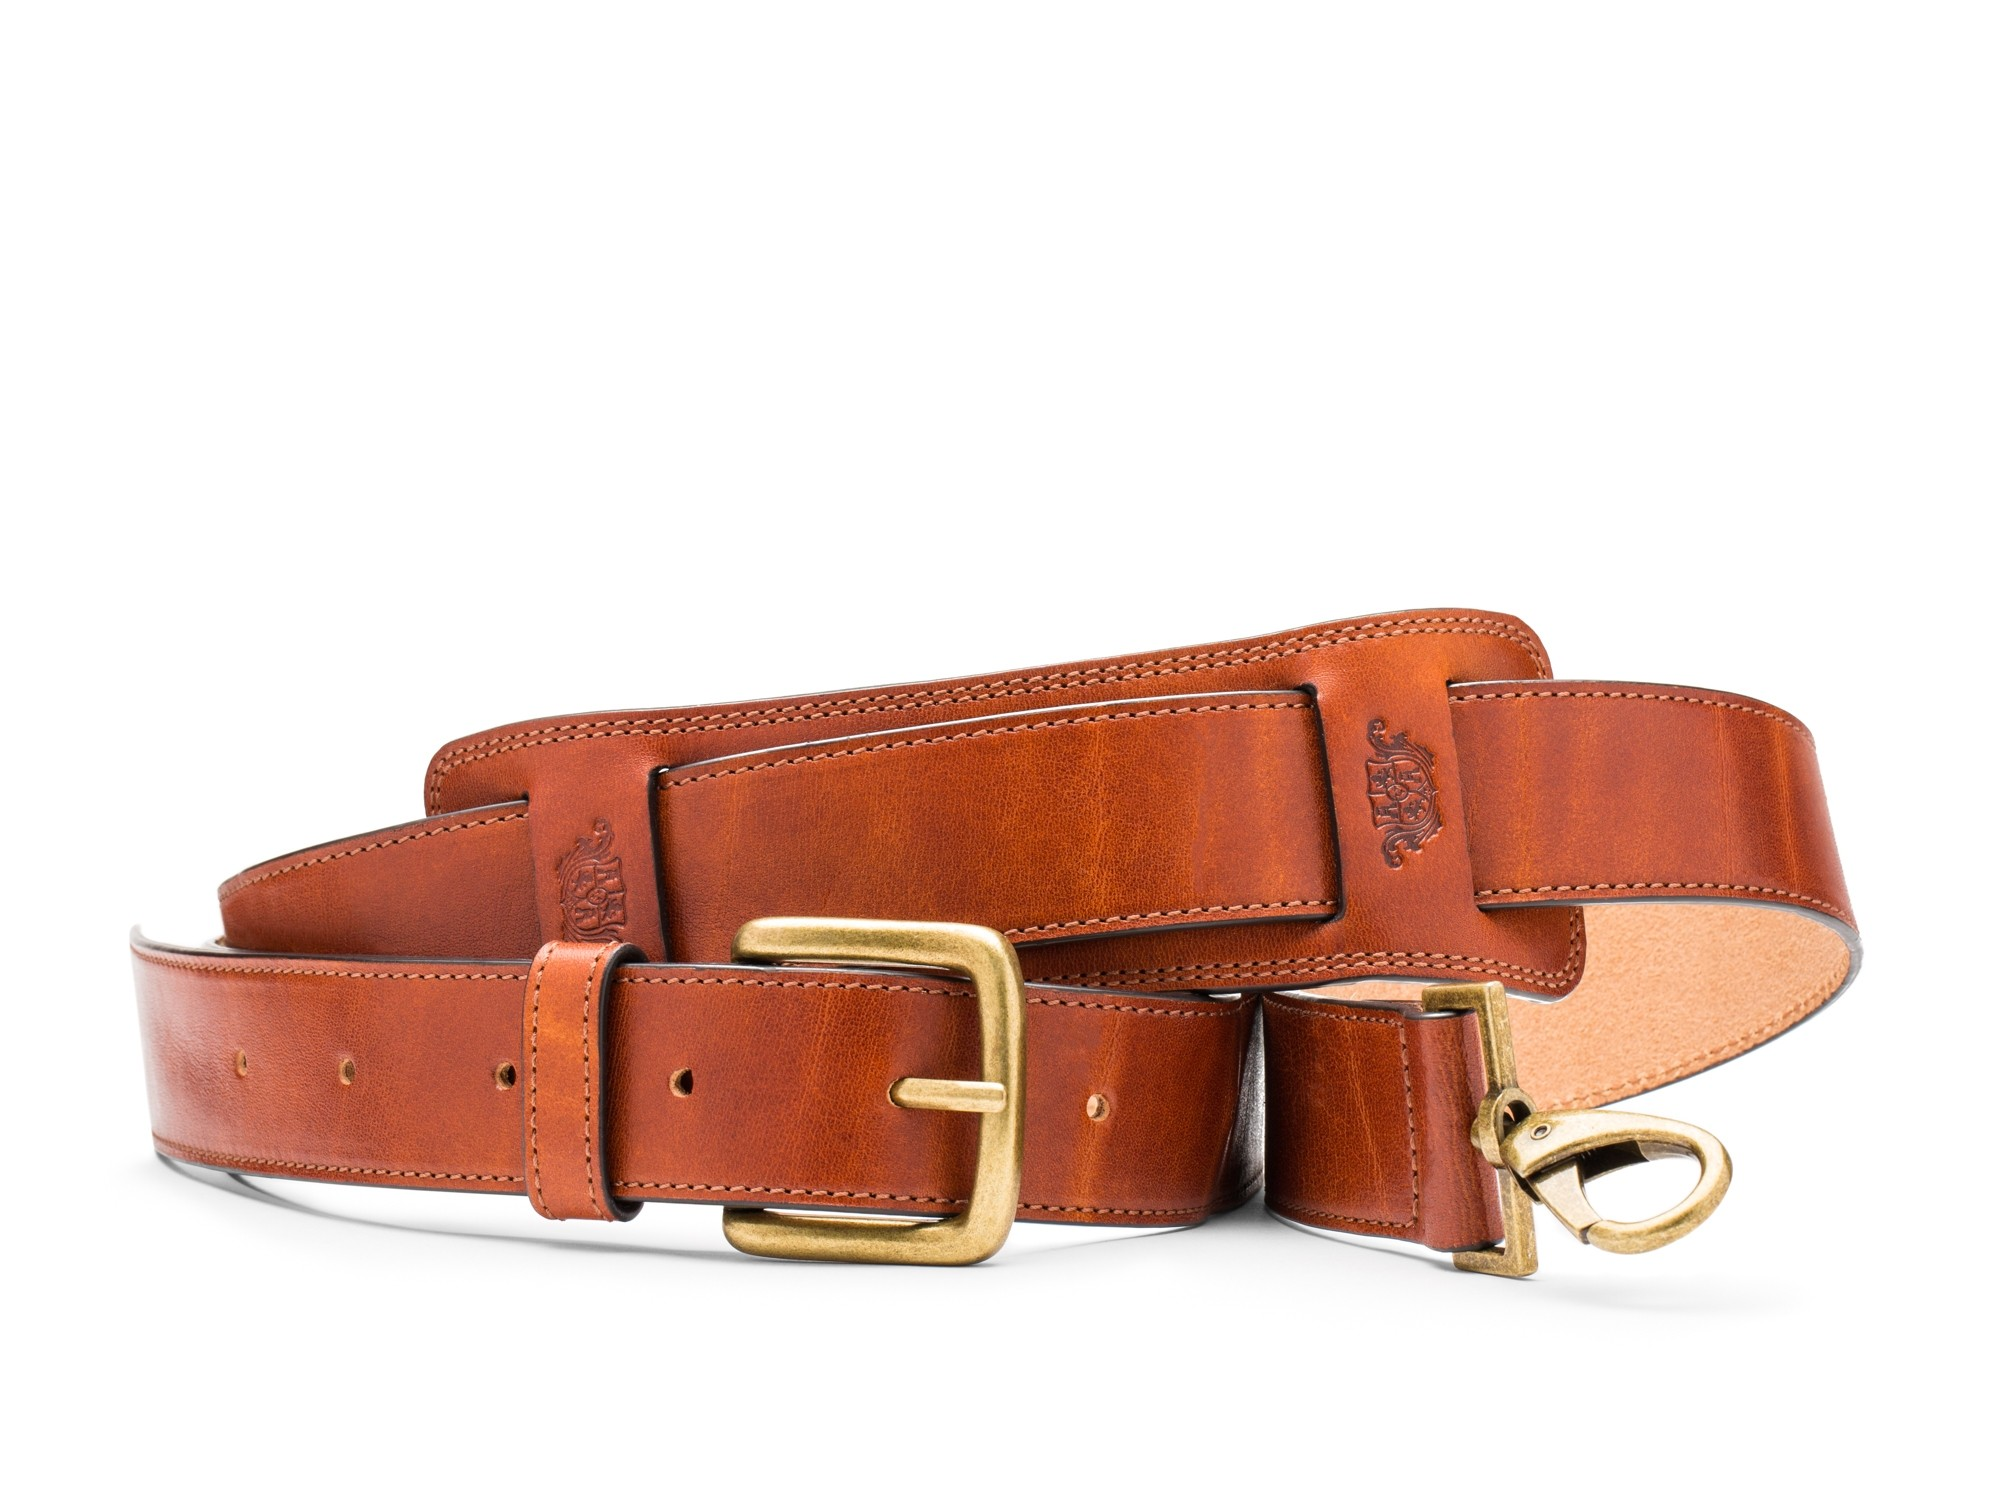 Deluxe All Leather Shoulder Strap